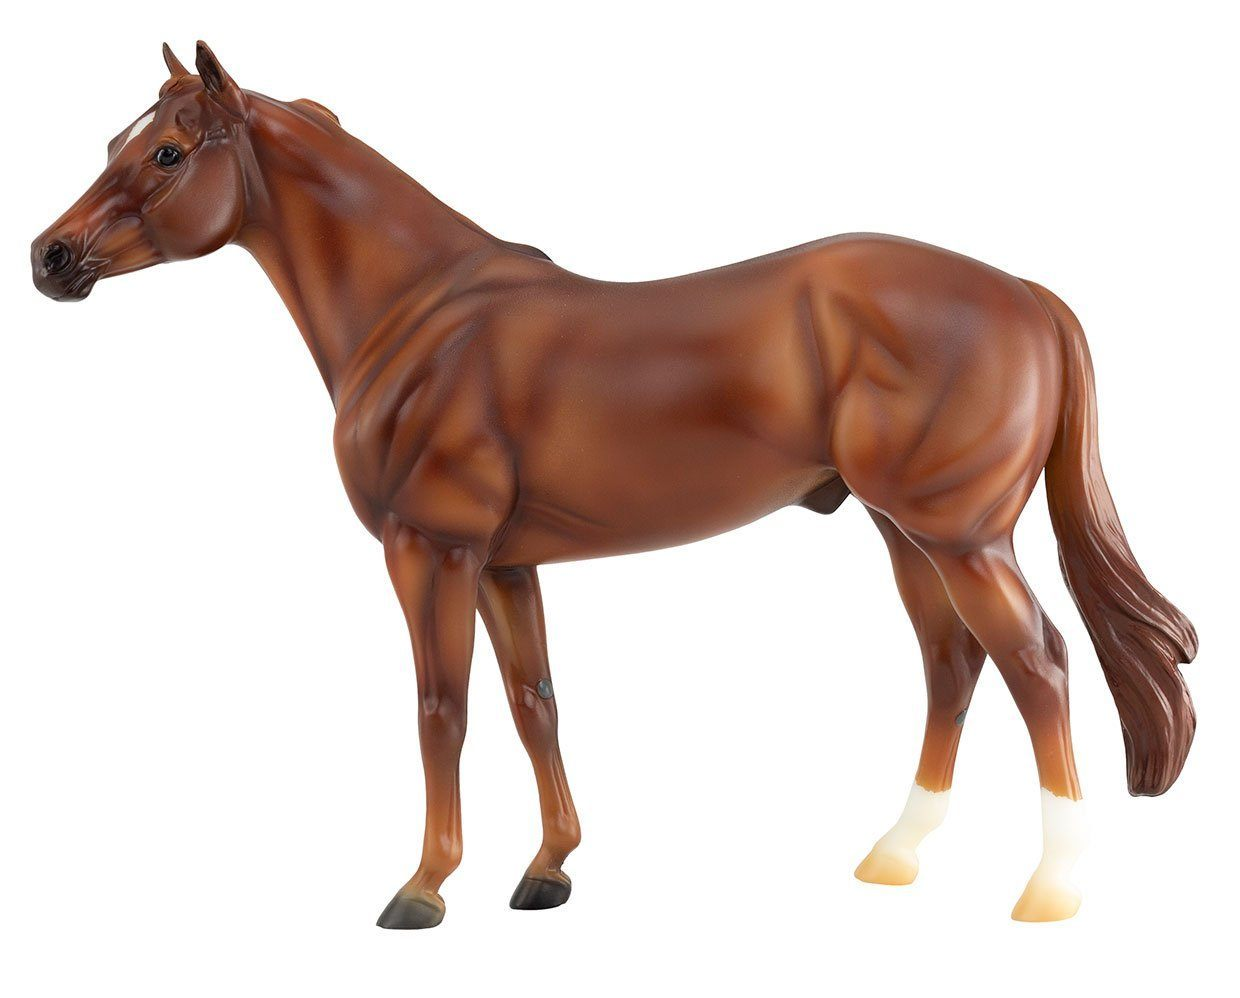 Breyer Traditional #1824 The Ideal Series - American Quarter Horse - New Factory Sealed